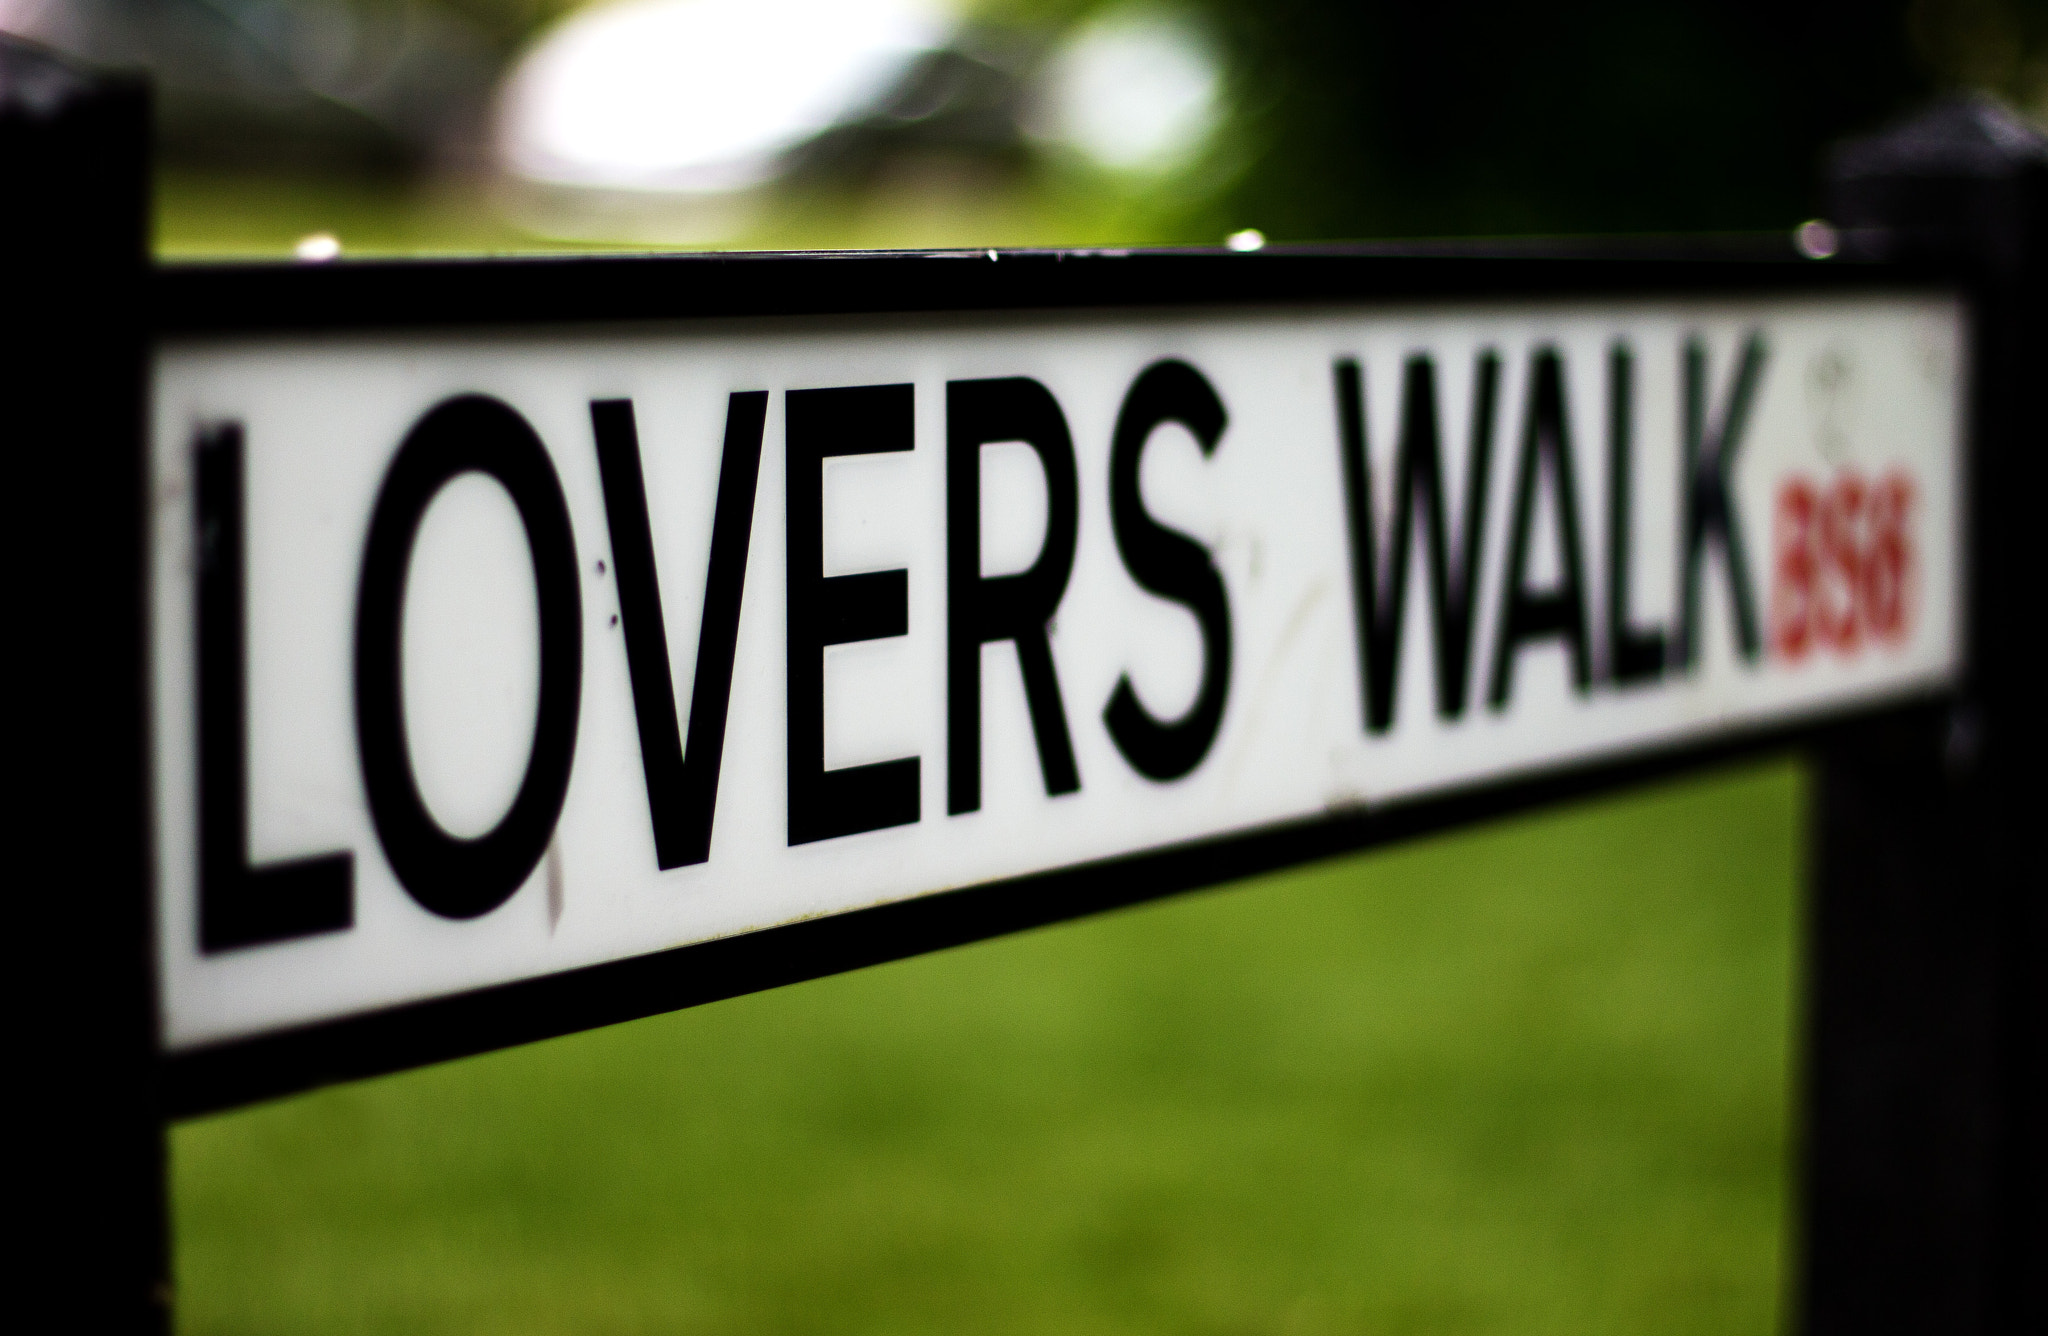 Photograph Lover's Walk by Fincher Trist on 500px